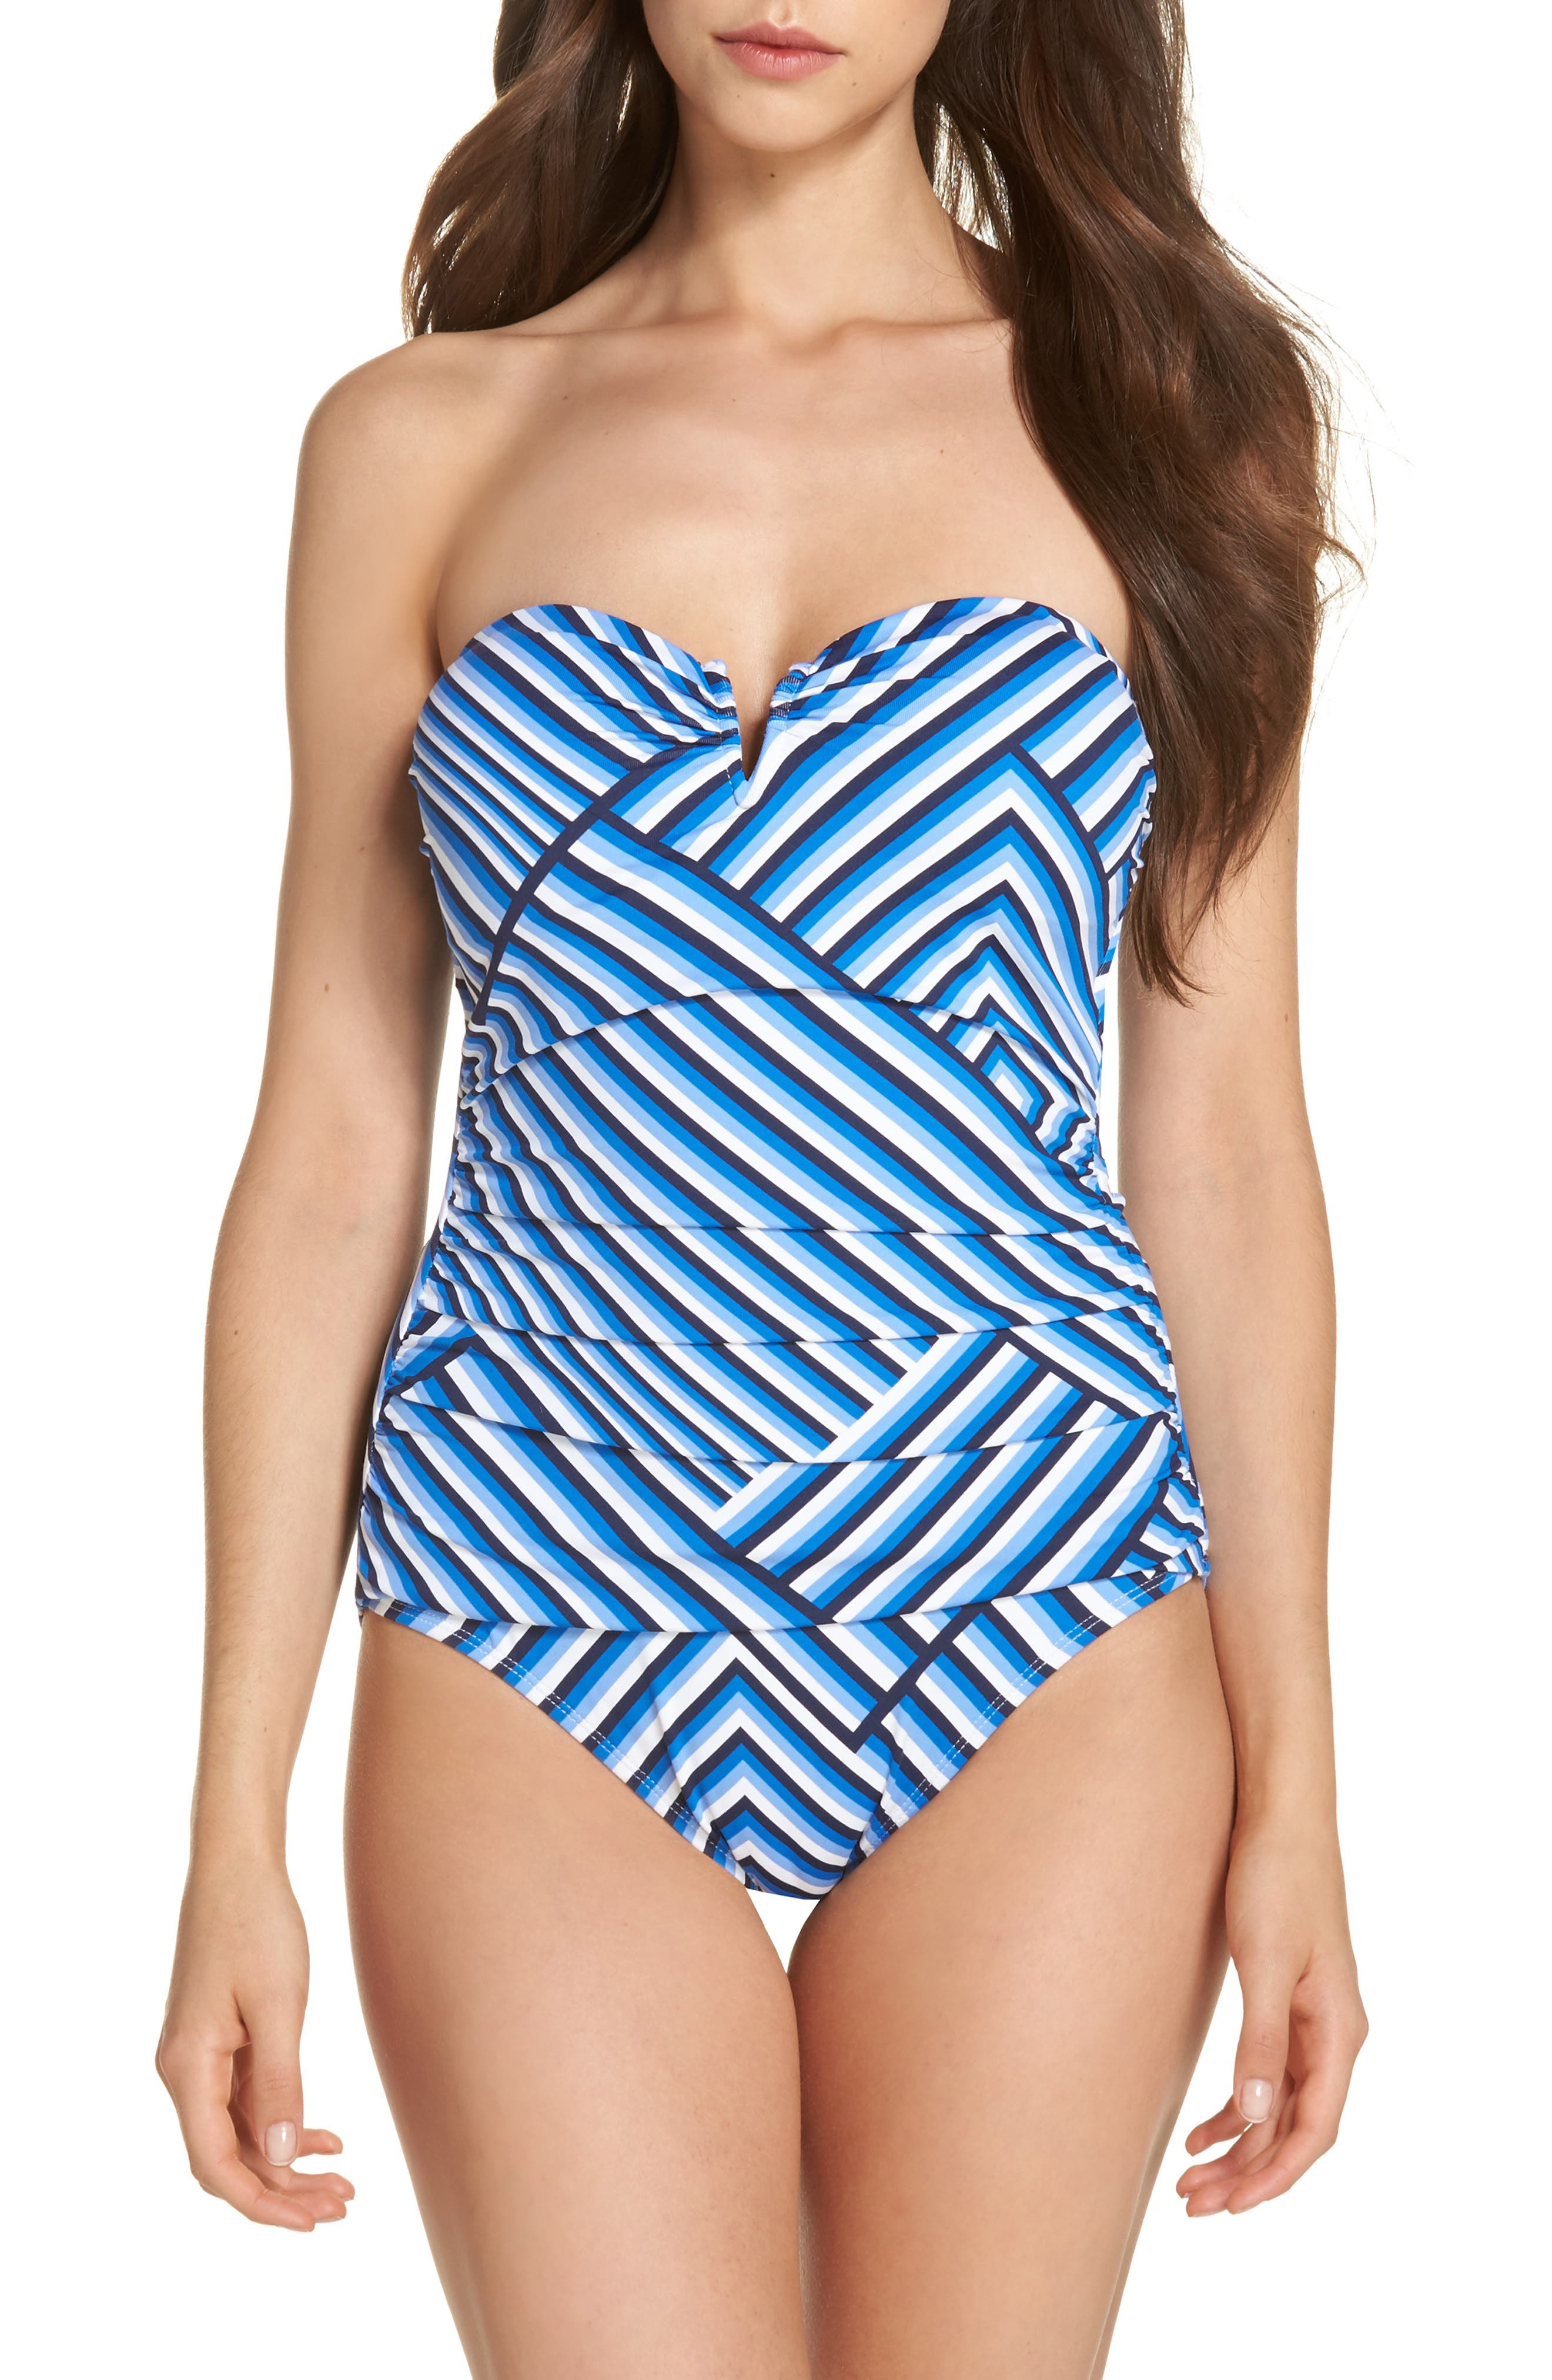 Fuller Fronds Strapless One-Piece Swimsuit,                             Main thumbnail 1, color,                             White